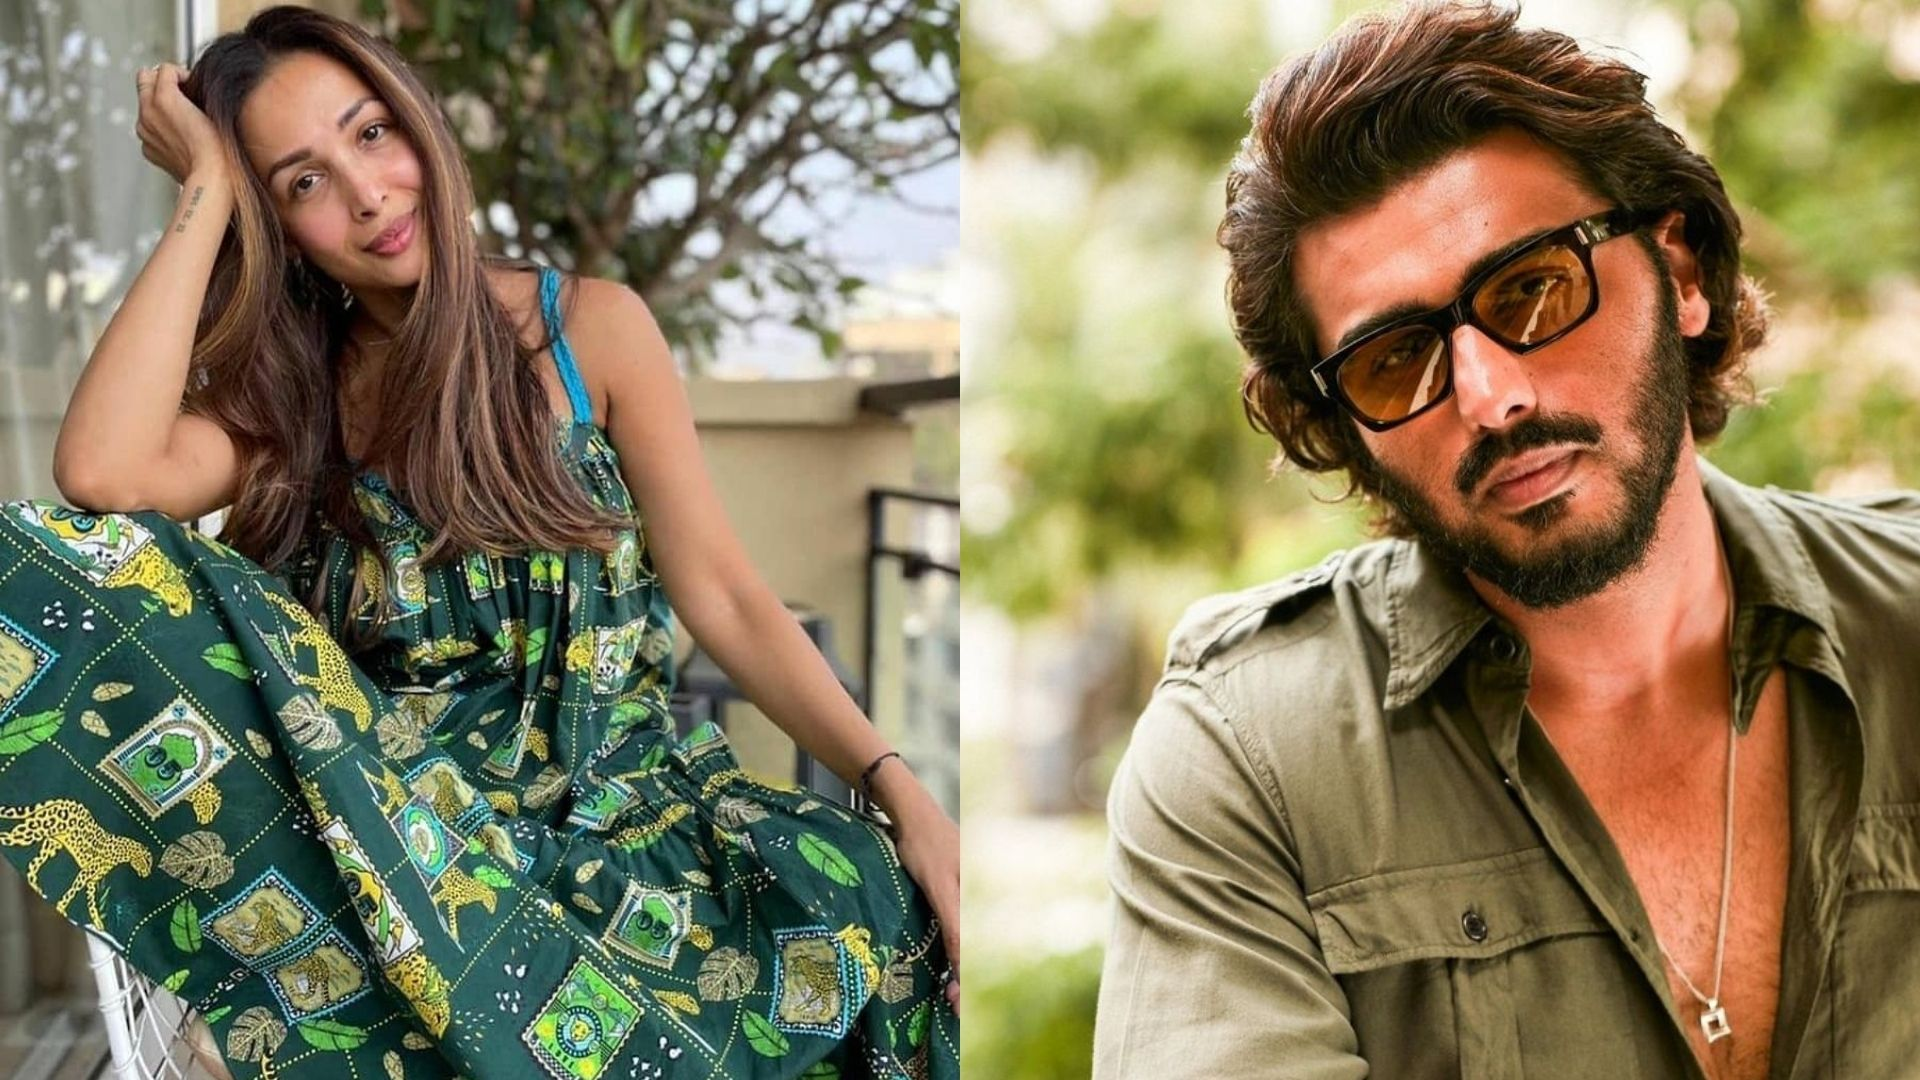 Do You Know Who Malaika Arora's Crush Is? Well, It's Not Arjun Kapoor